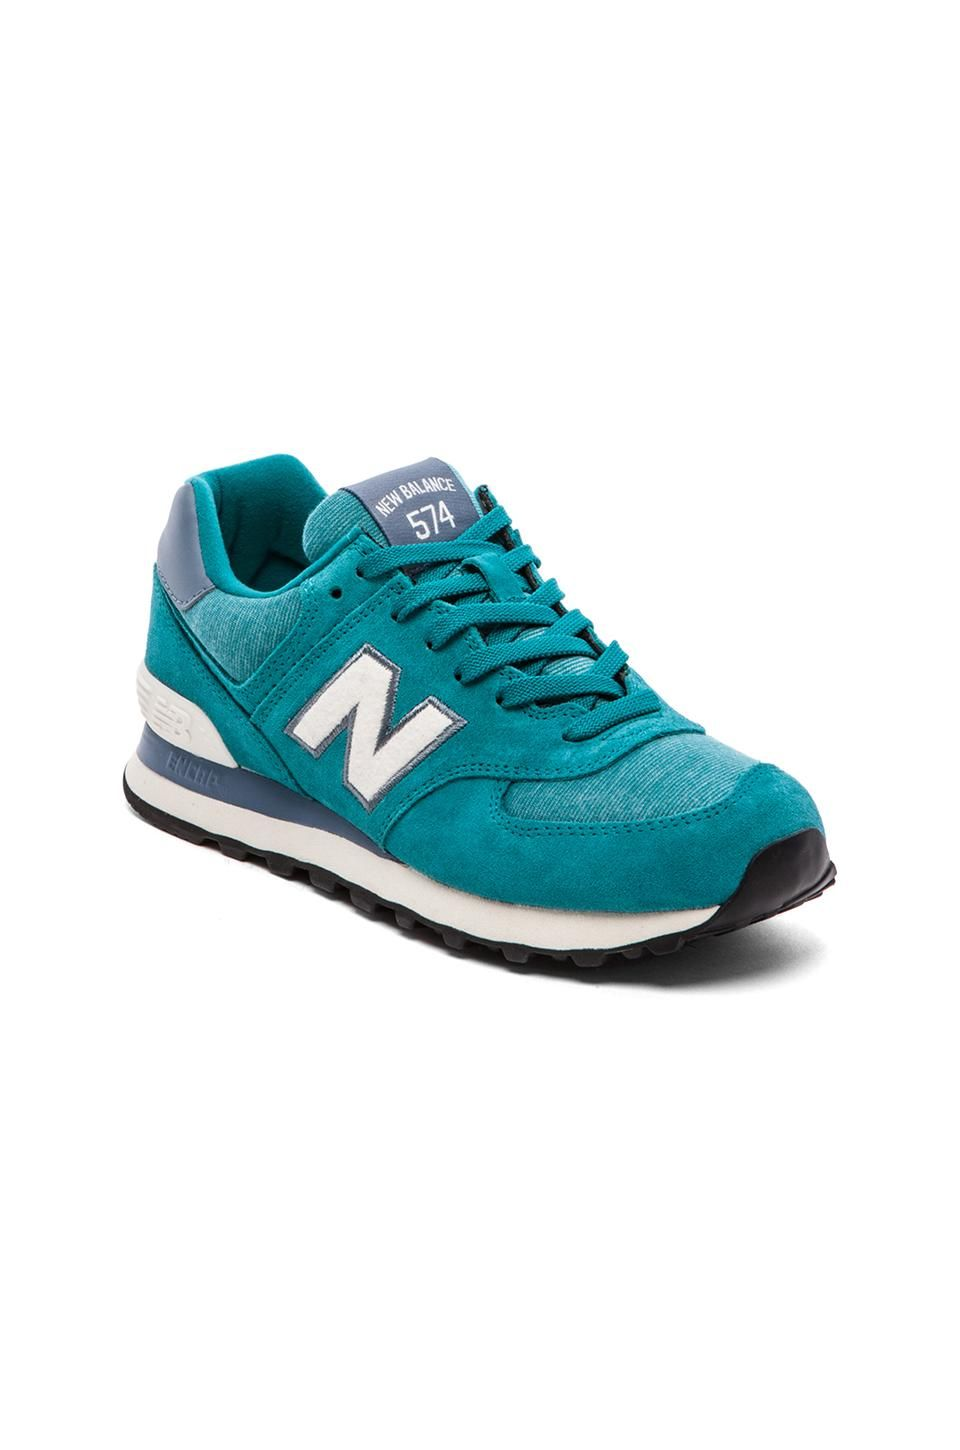 New Balance 574 Pennant Collection